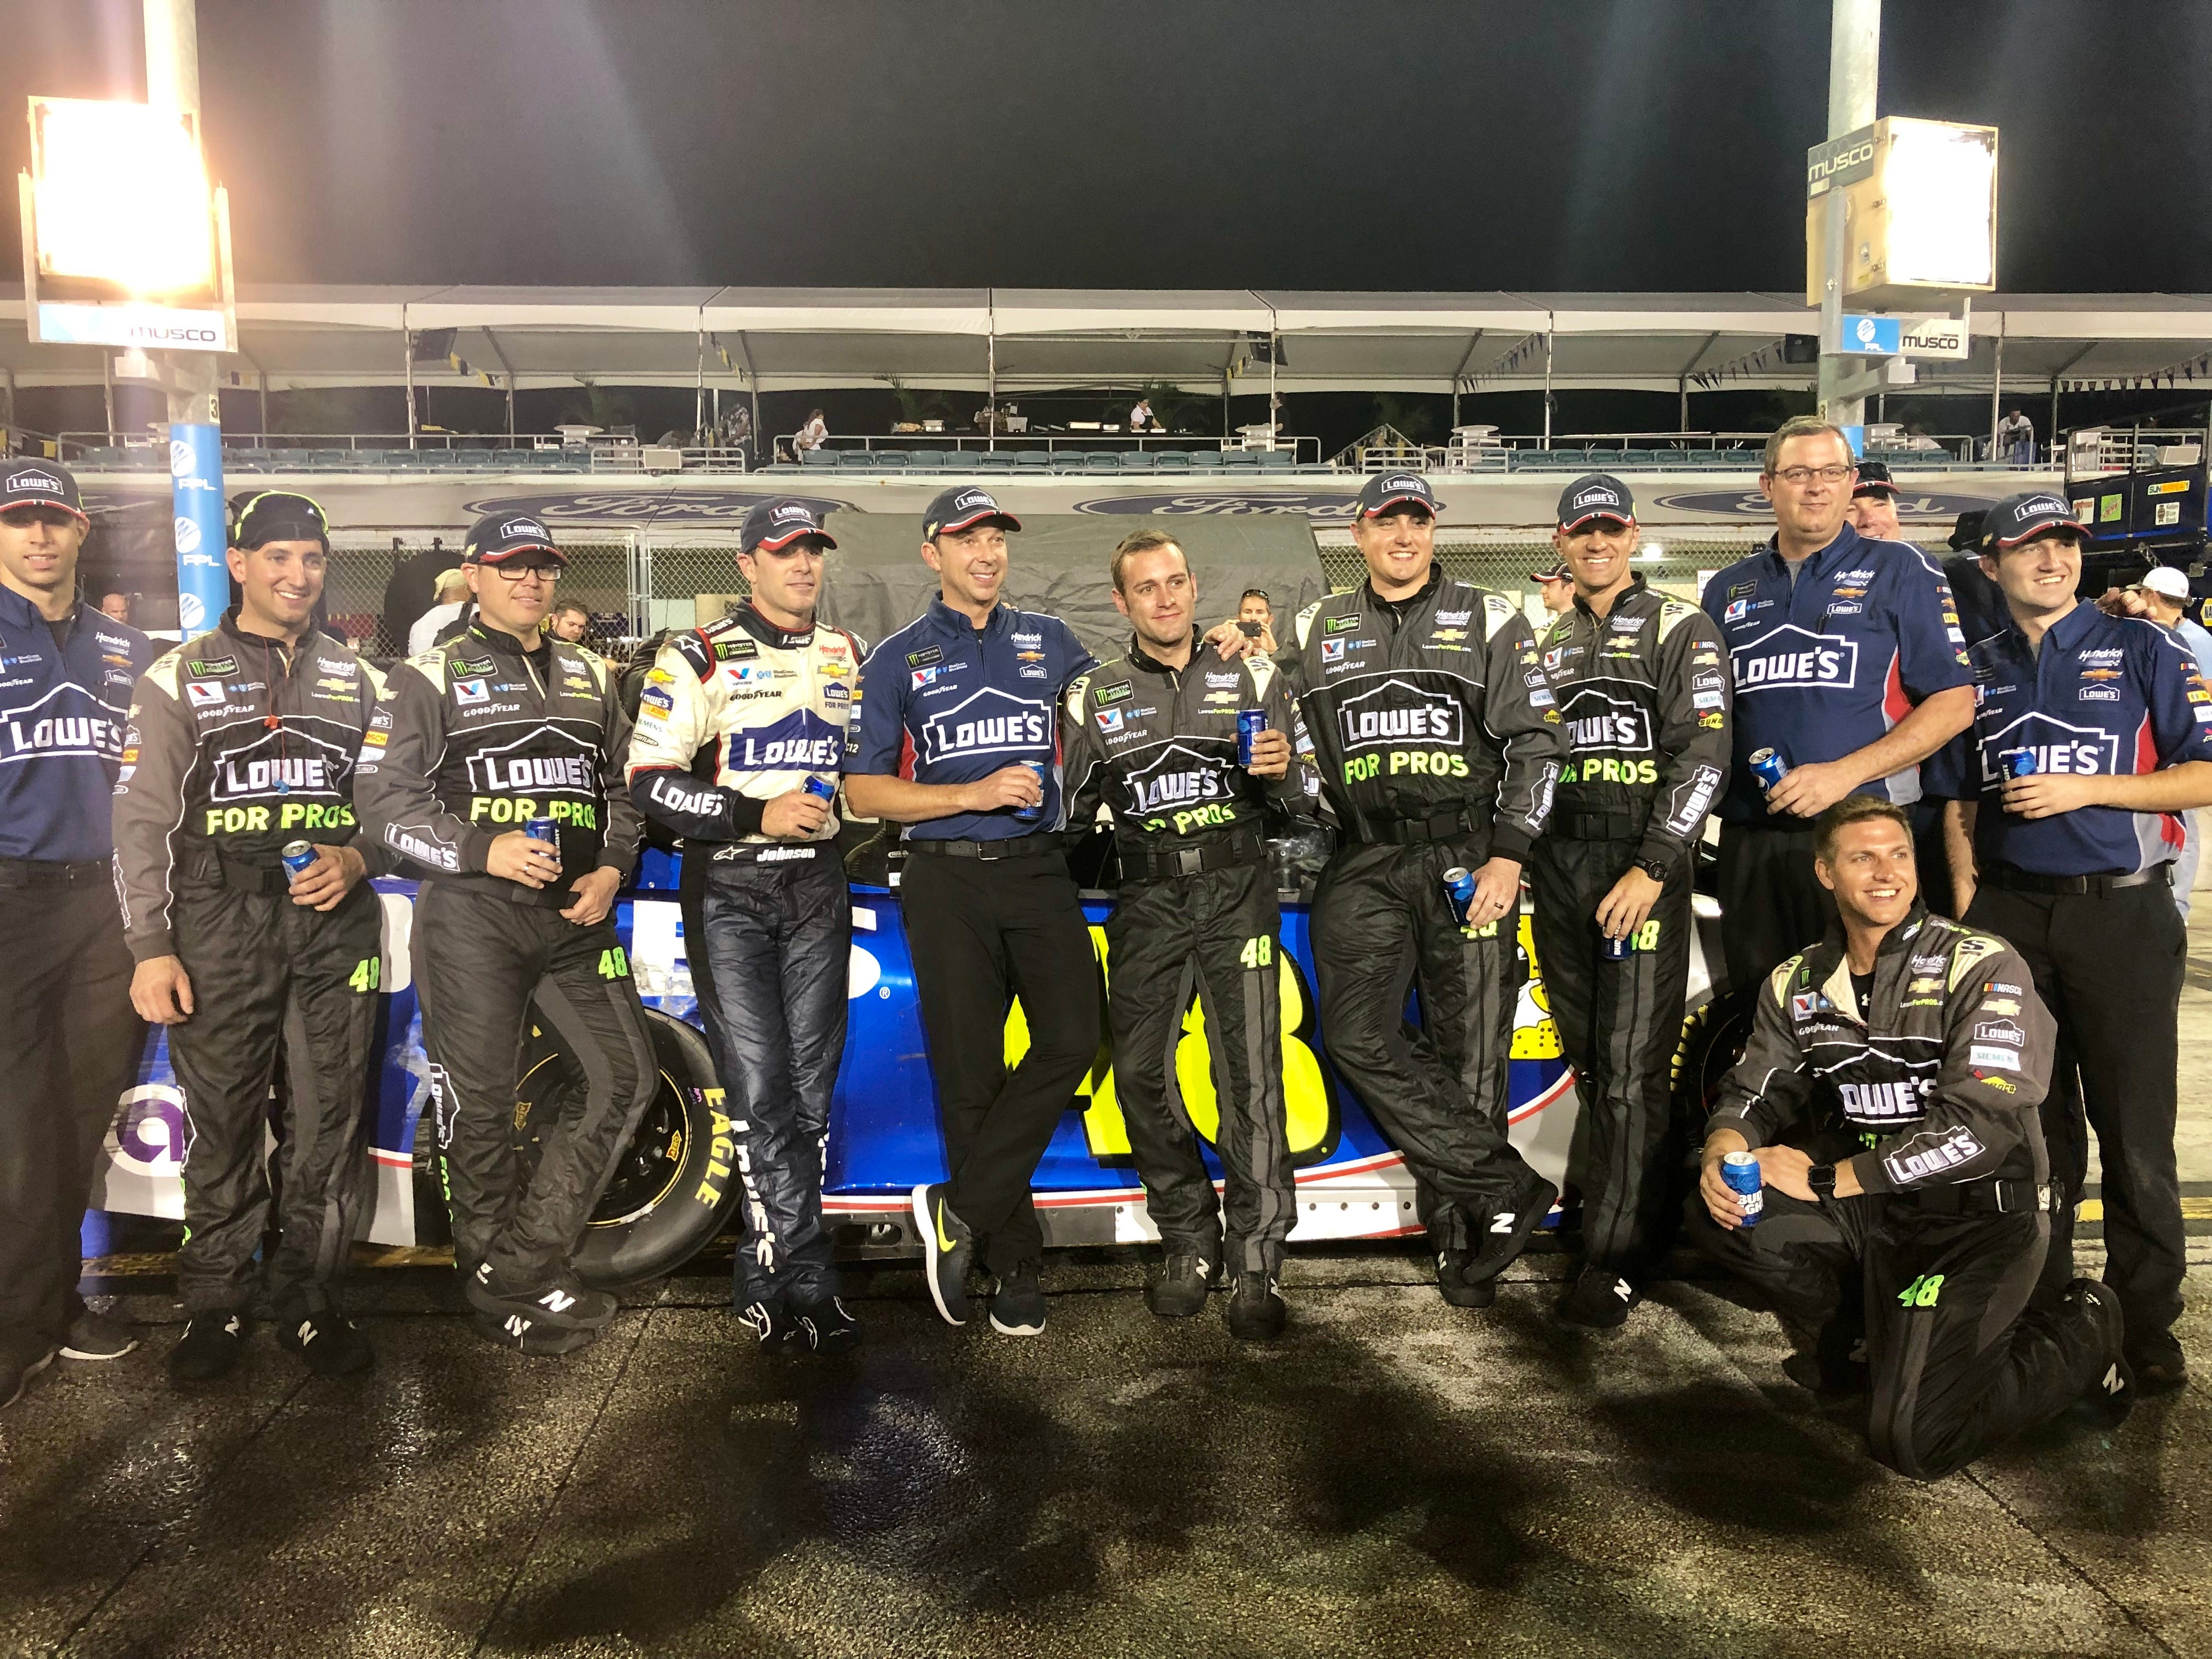 Jimmie Johnson, Chad Knaus and the No. 48 Hendrick Motorsports team gather for one last beer together on pit road.